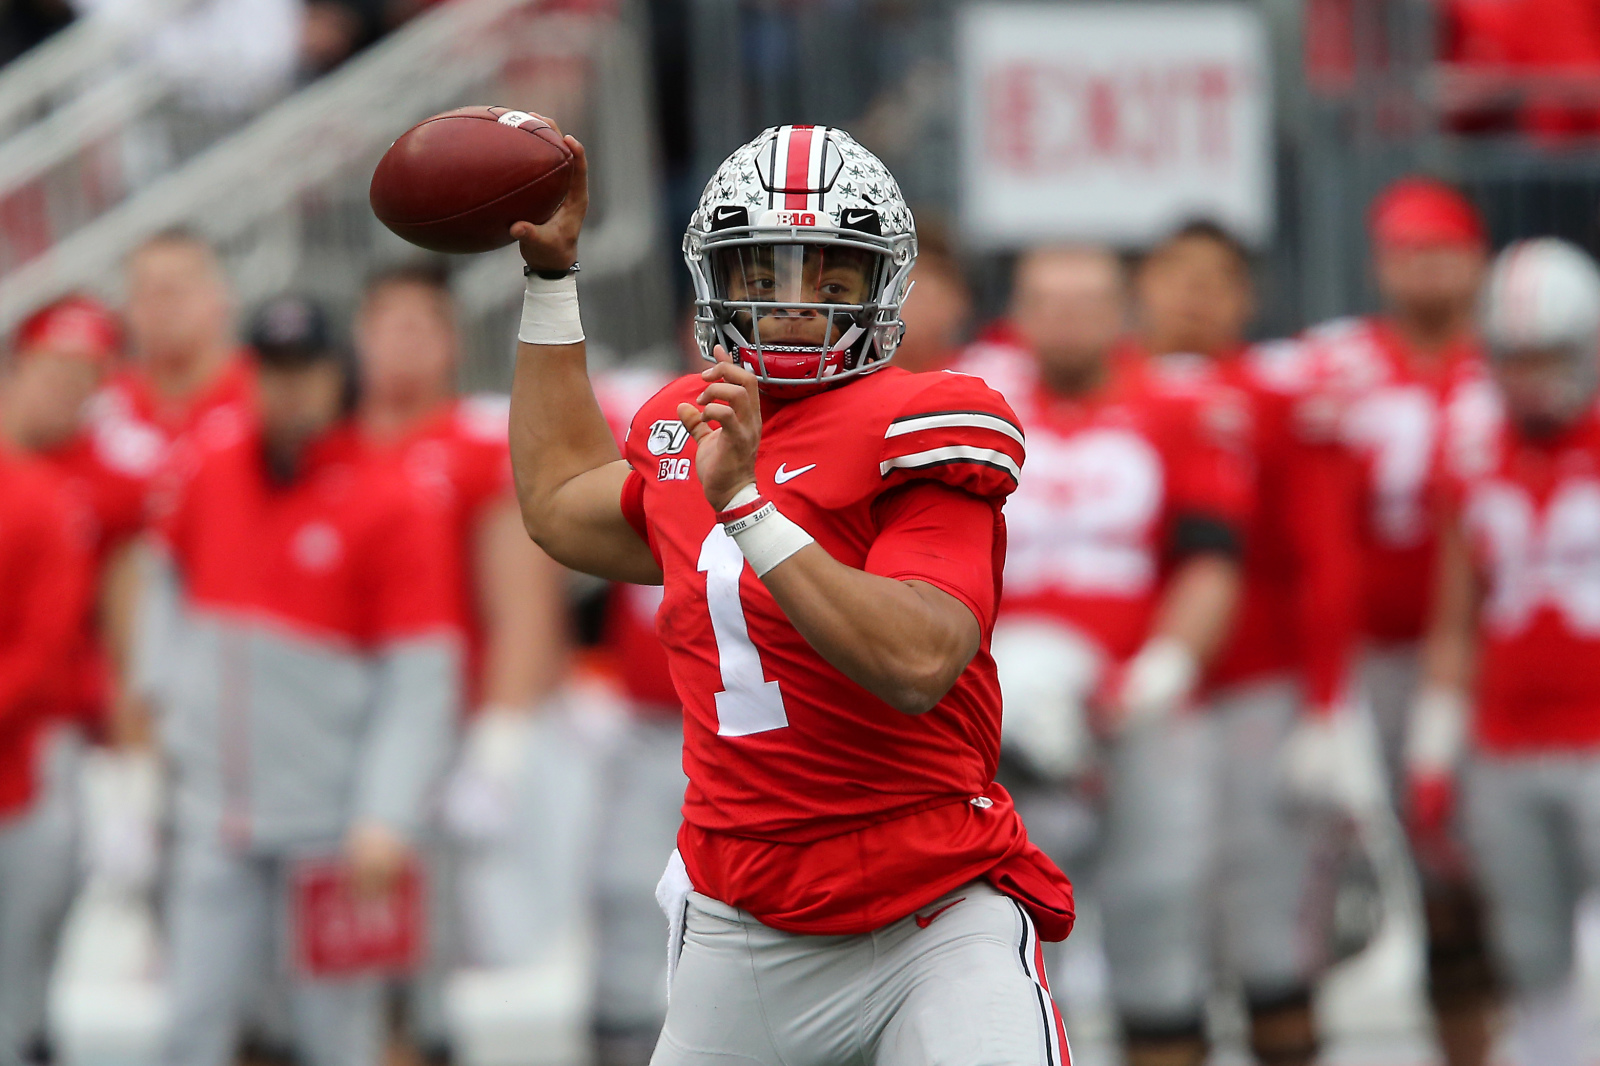 2021 NFL Draft: Team jumps to top 10 for QB in 2-round ...